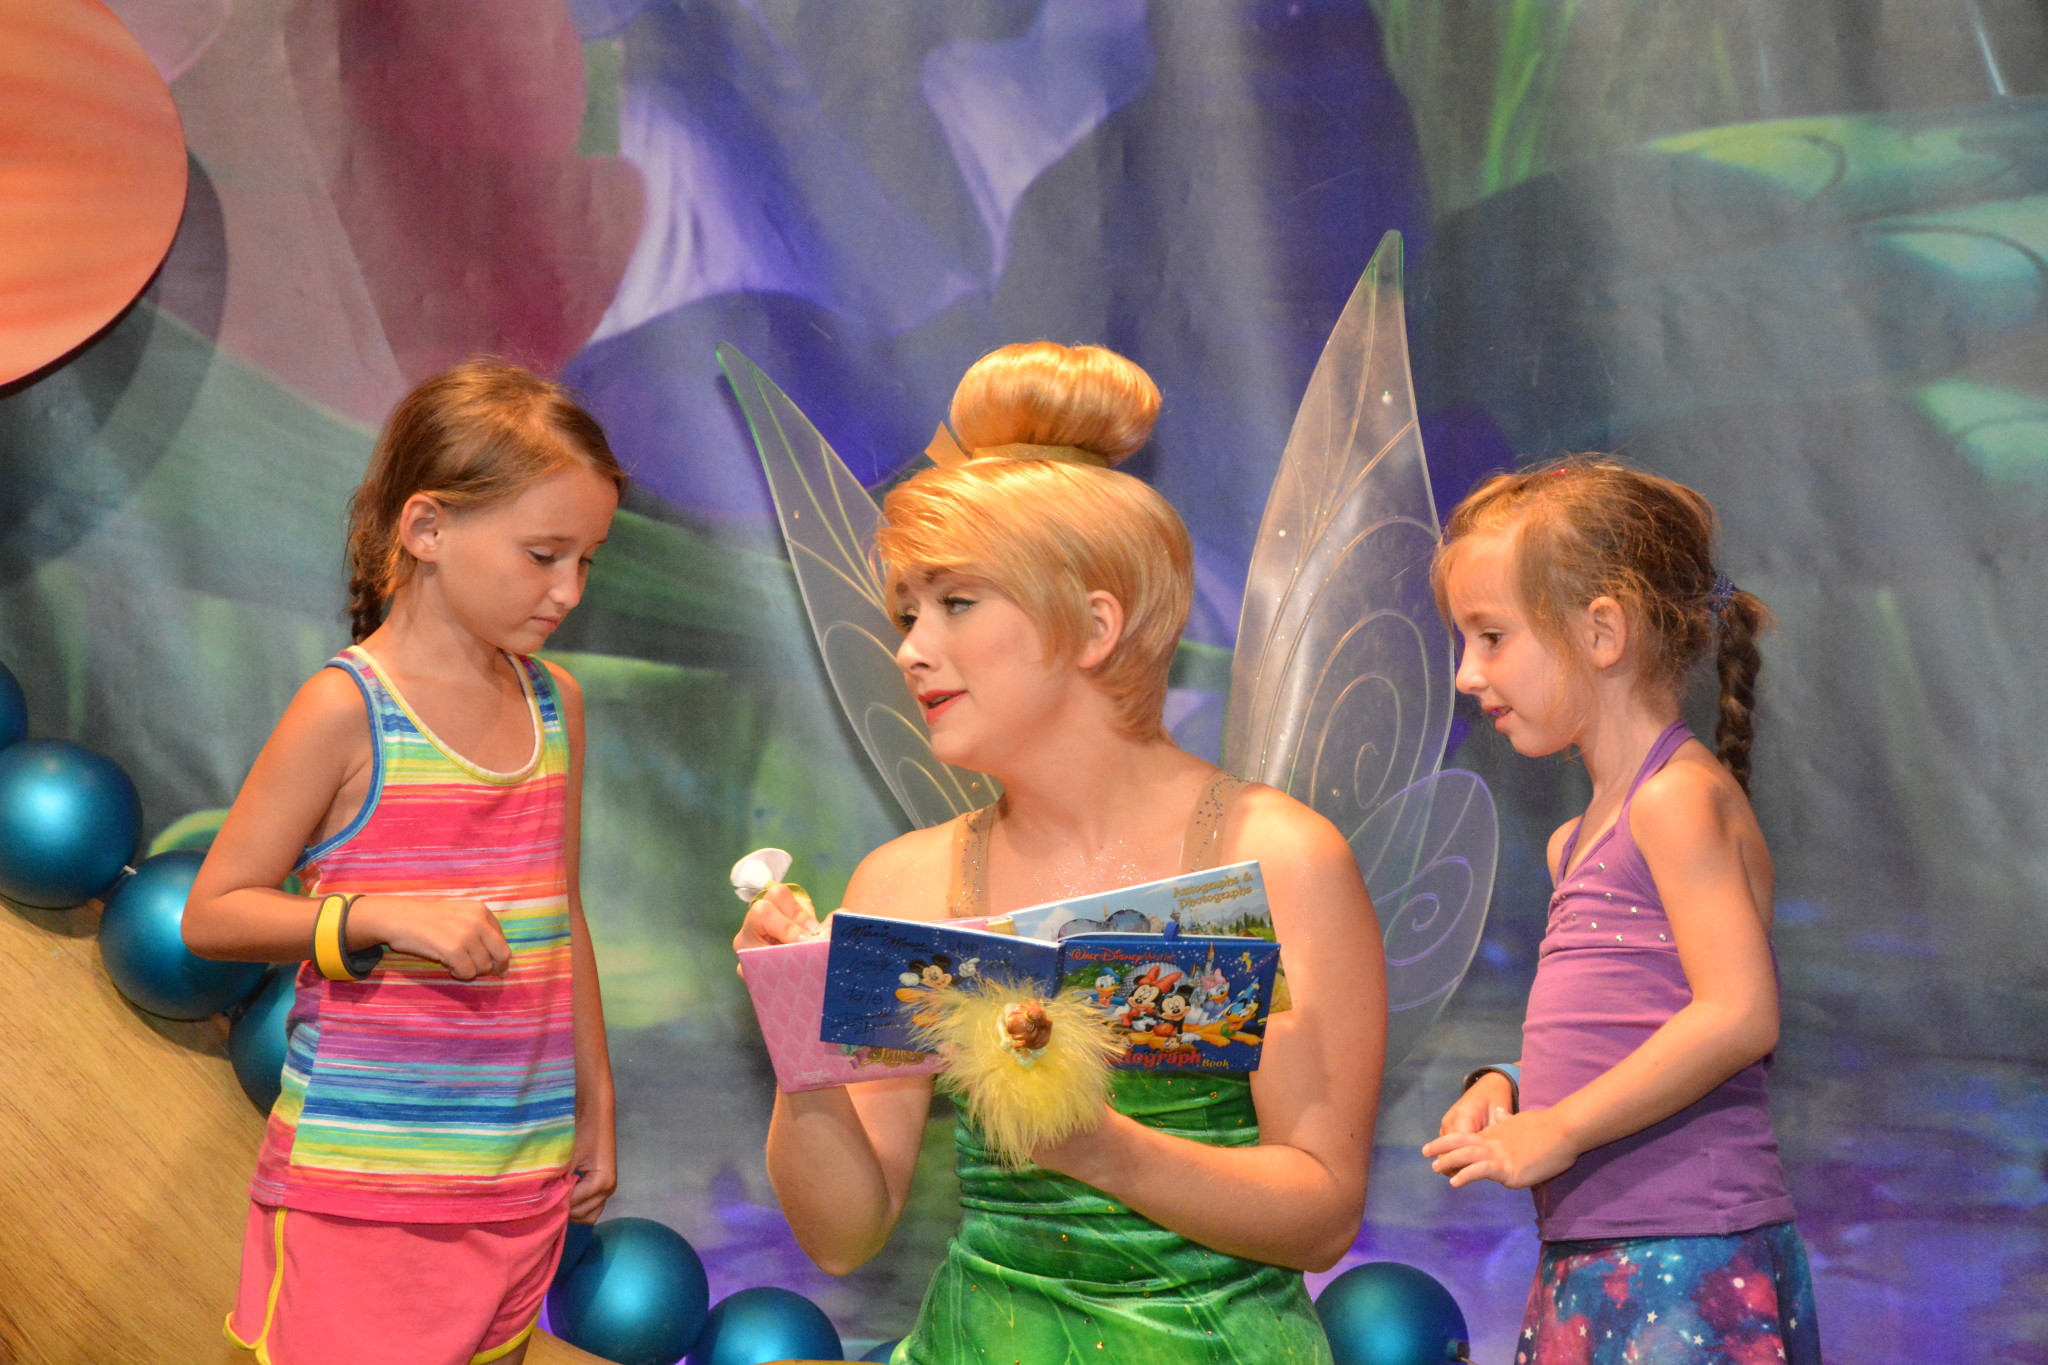 The girls and Tinker Bell